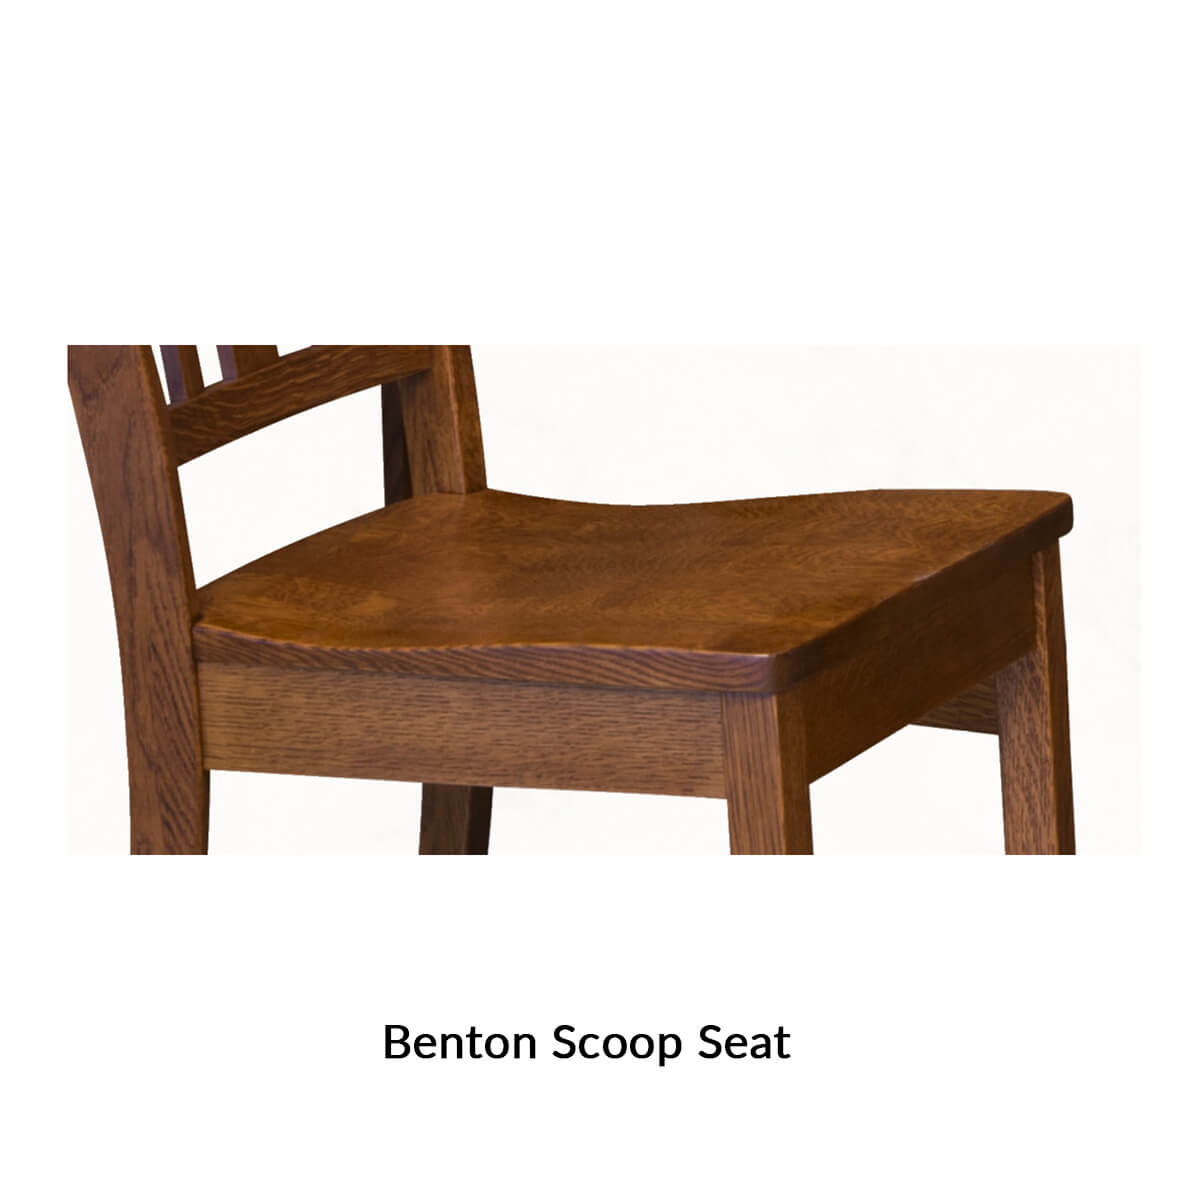 1-benton-scoop-seat-mission-edge-.jpg